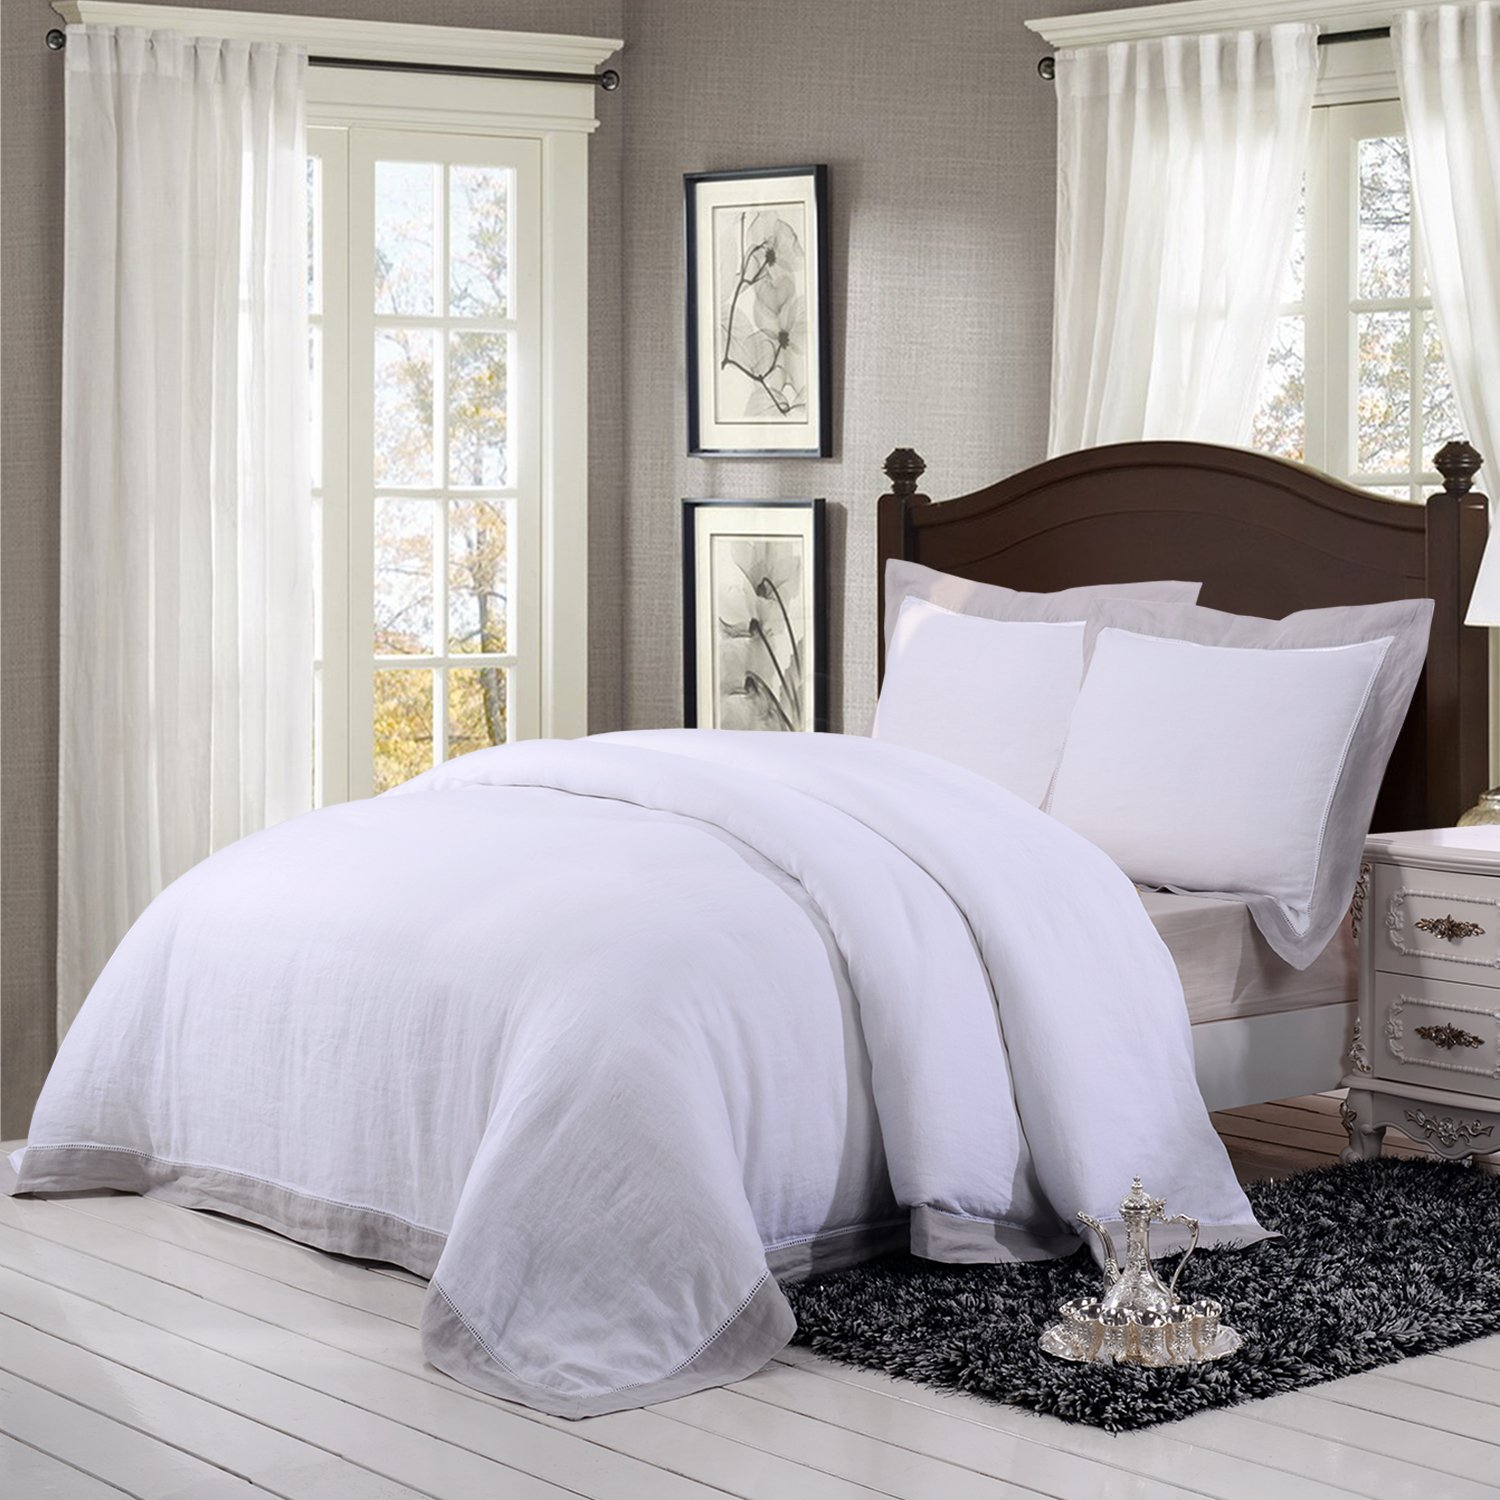 Simple&Opulence 100% Linen Stone Washed 3pcs Solid Pure Color Hemstitch Lace Duvet Cover Set (King, Grey Border)